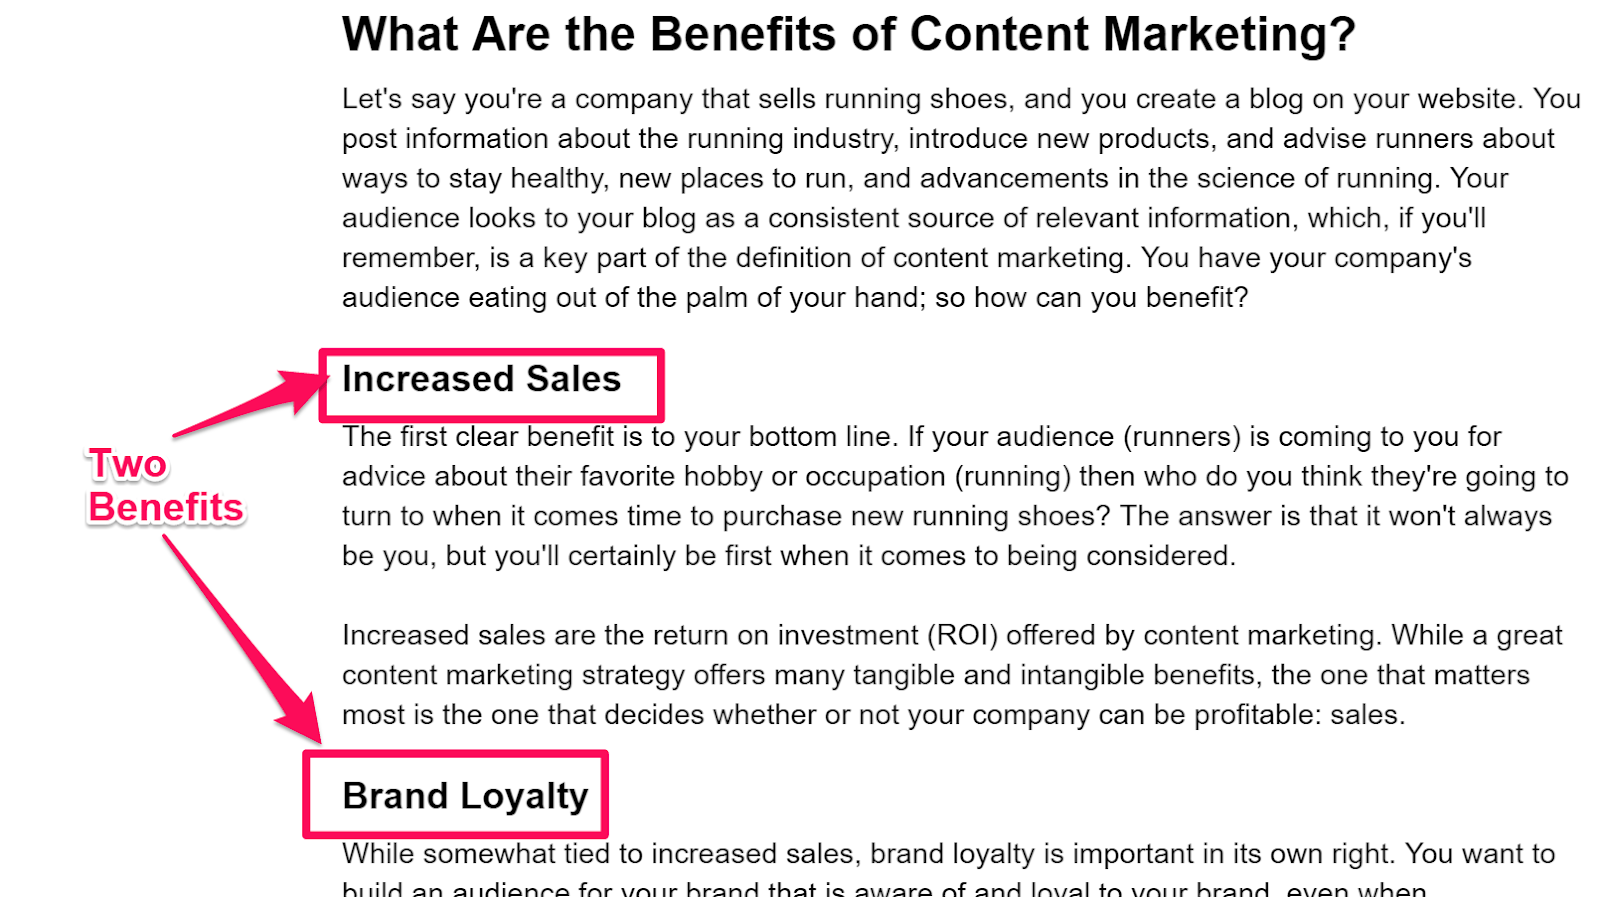 benefits of content marketing (crowd content)